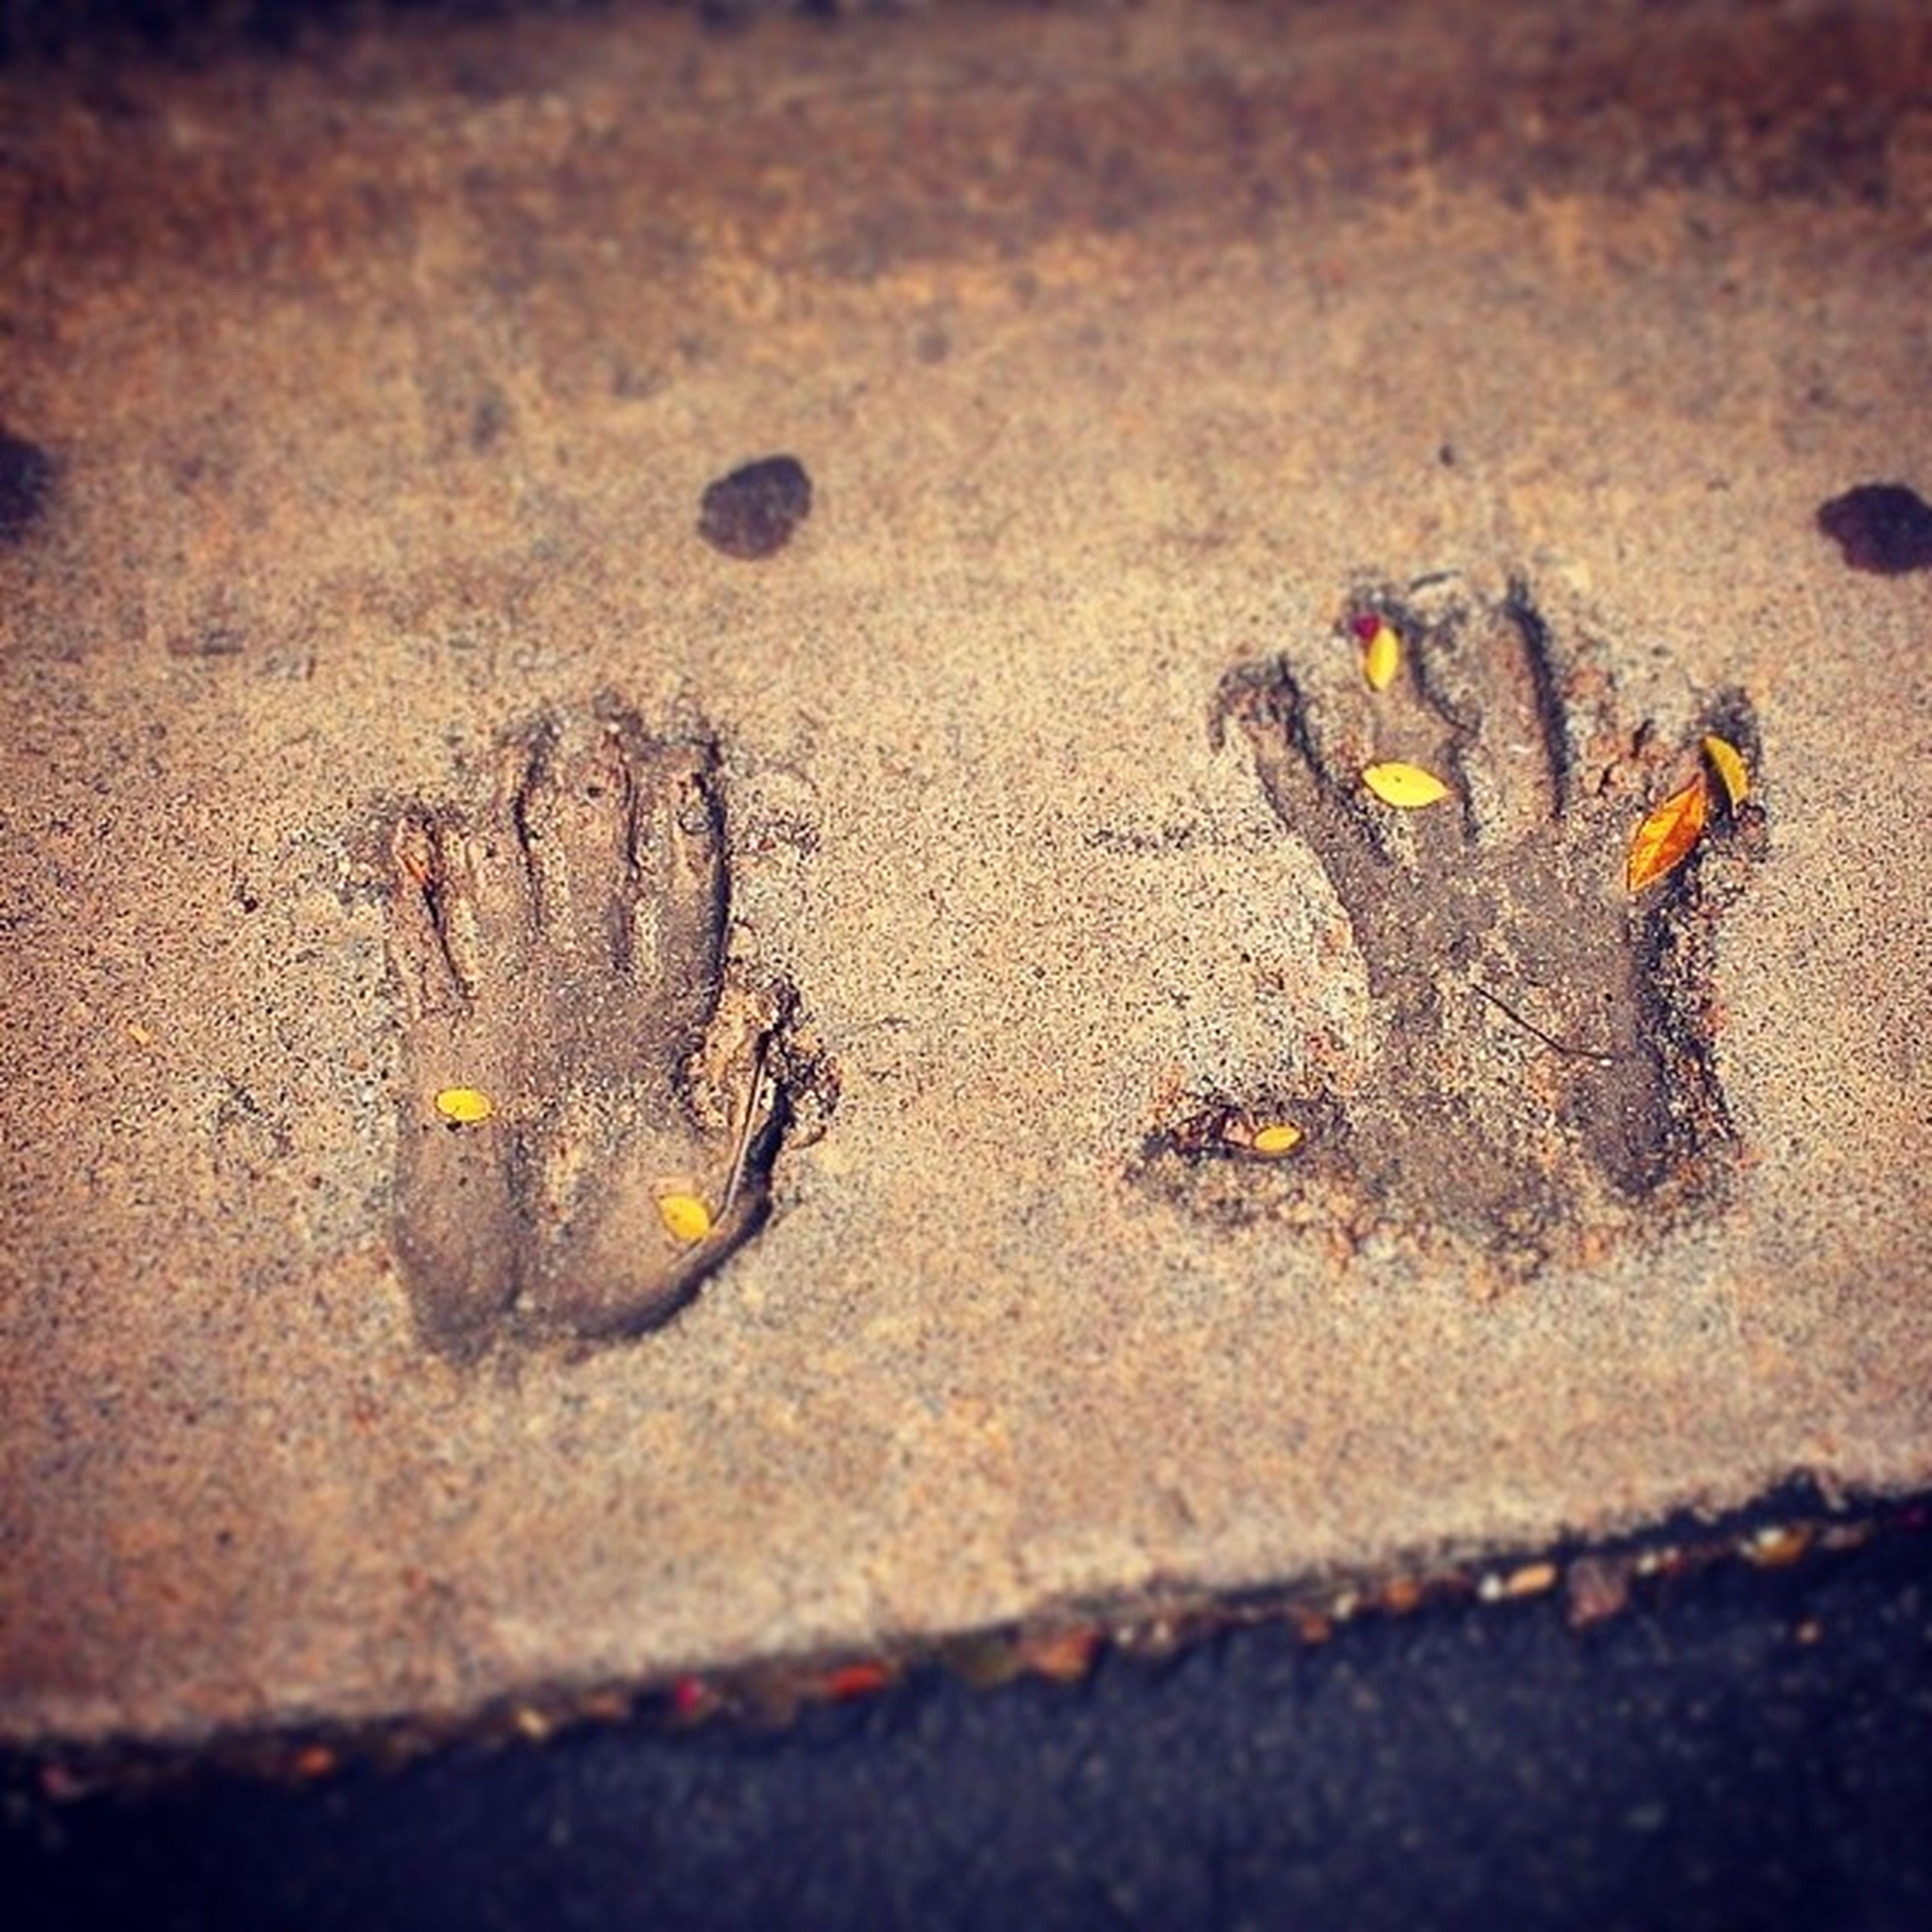 street, asphalt, close-up, high angle view, sand, road, selective focus, yellow, ground, no people, textured, day, outdoors, nature, beach, still life, death, vignette, sunlight, the end